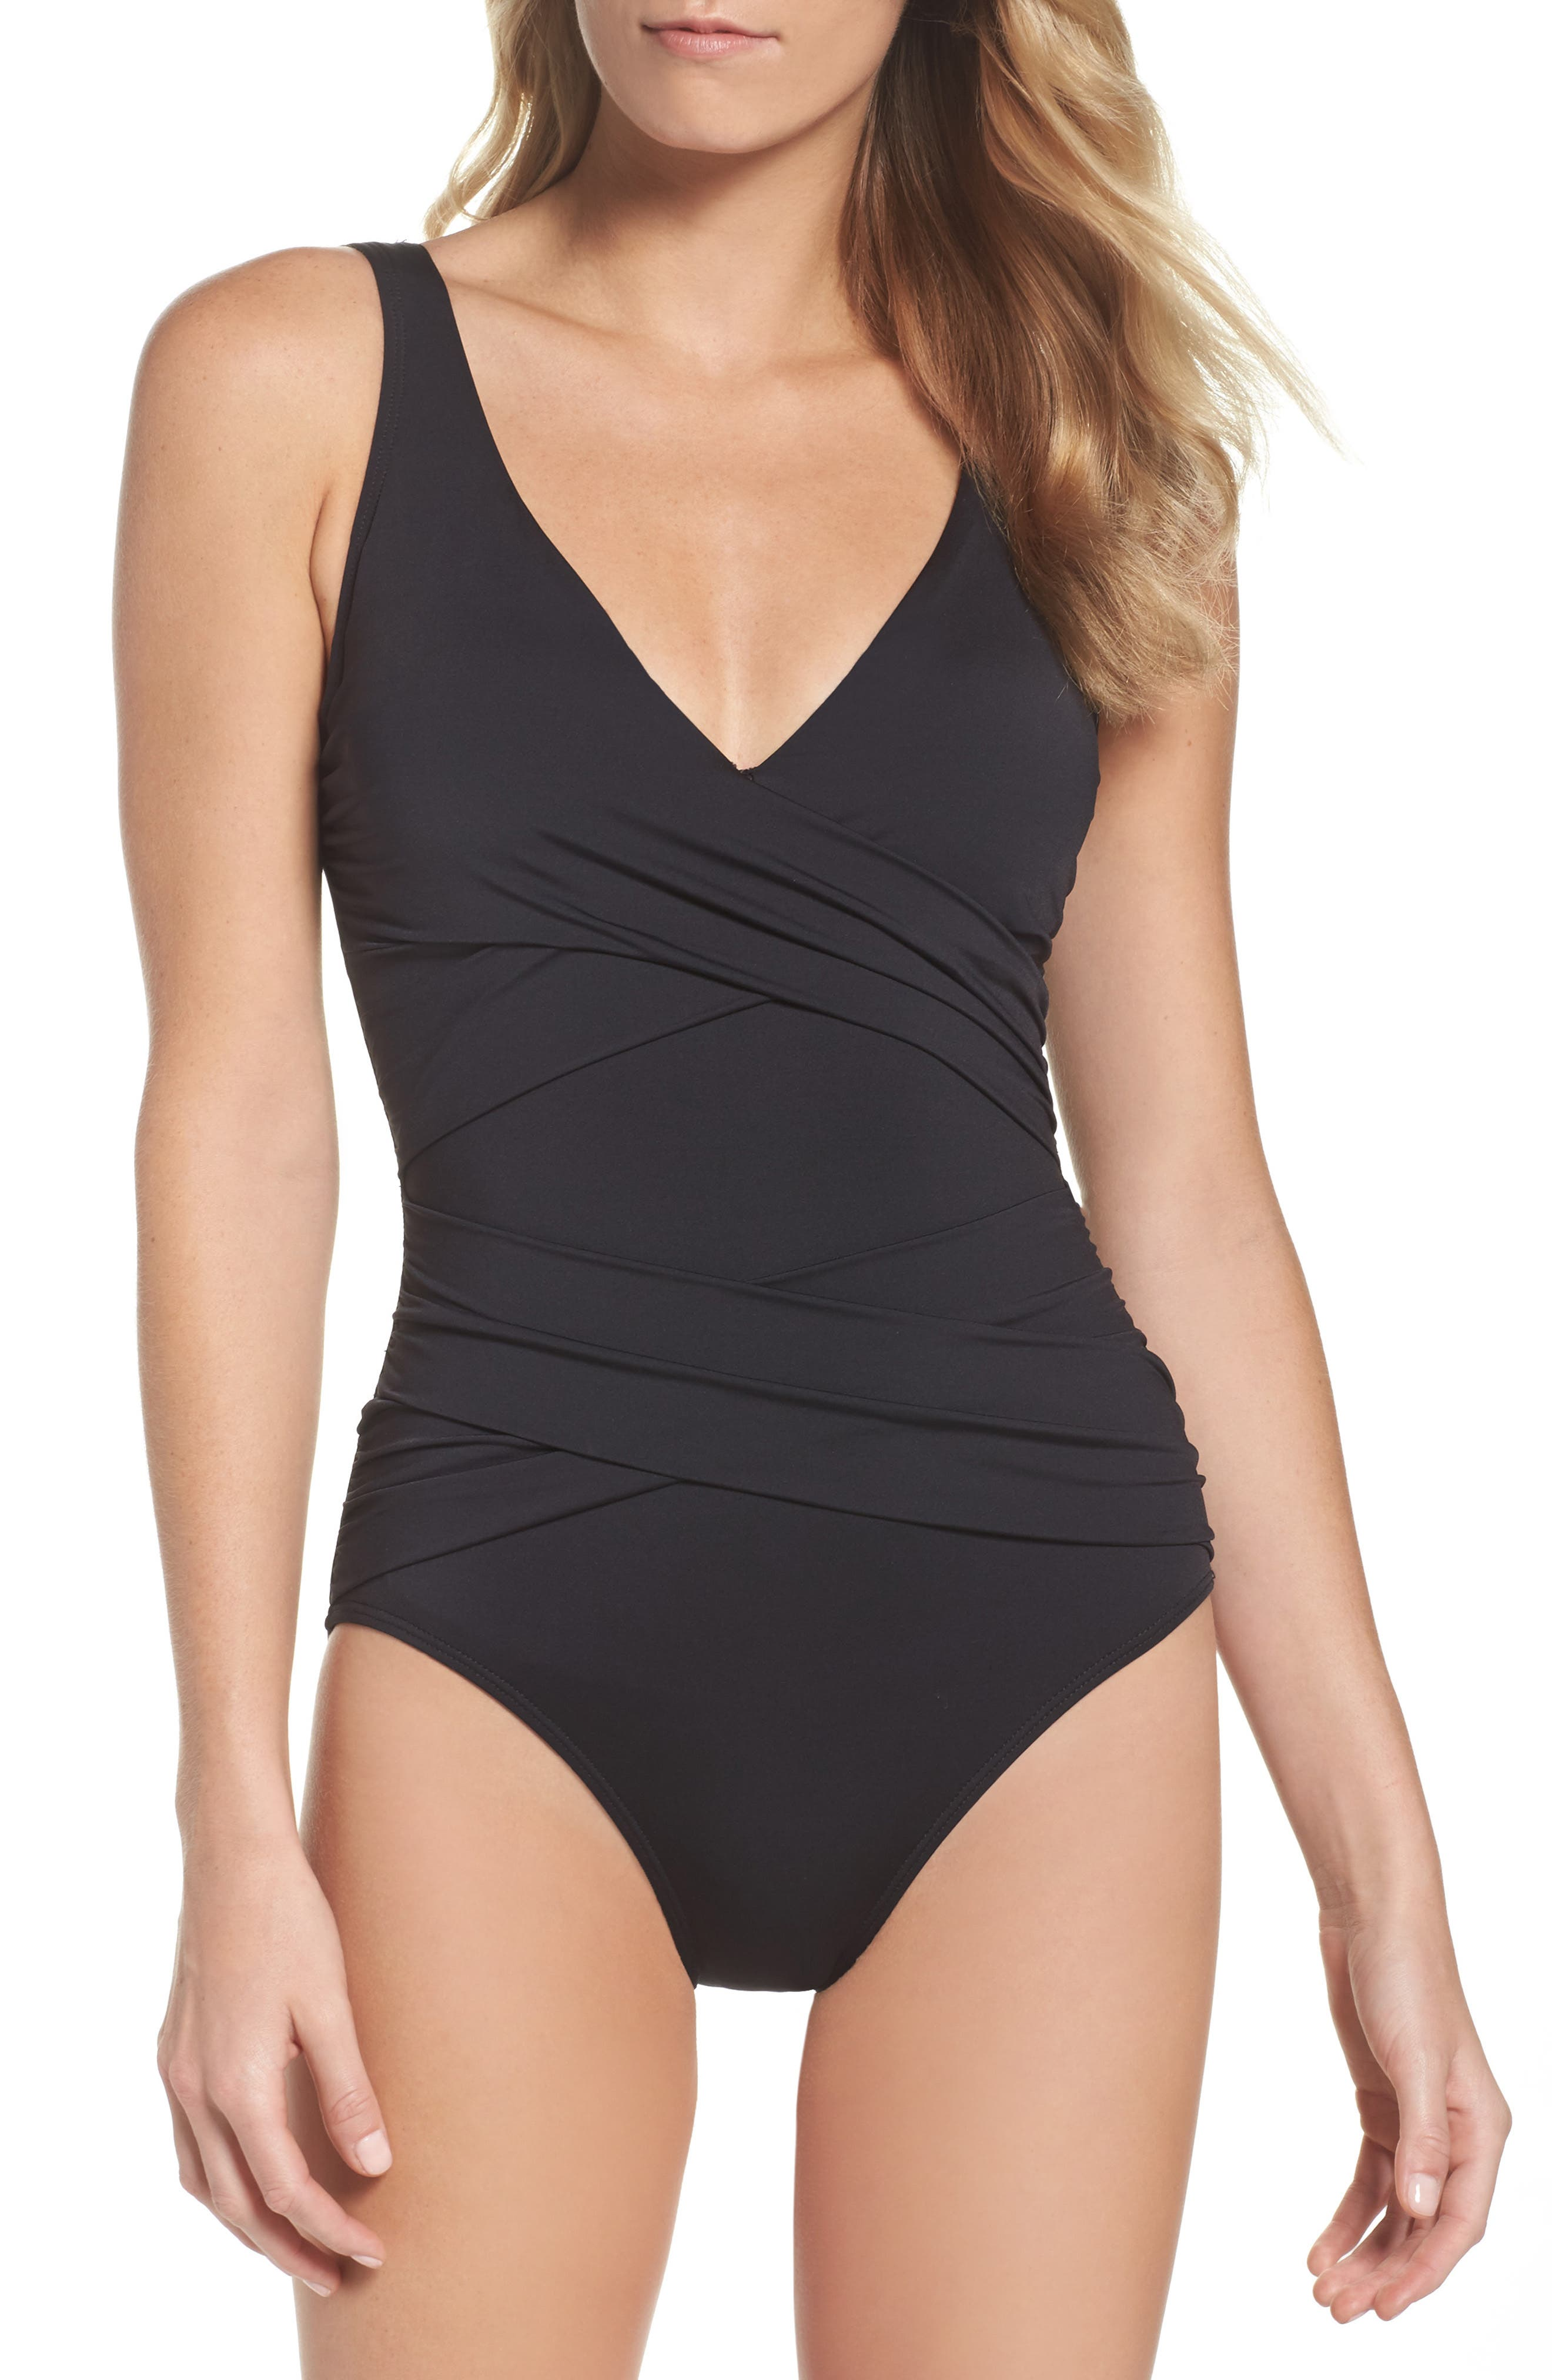 Pearl One-Piece Swimsuit,                             Main thumbnail 1, color,                             Black